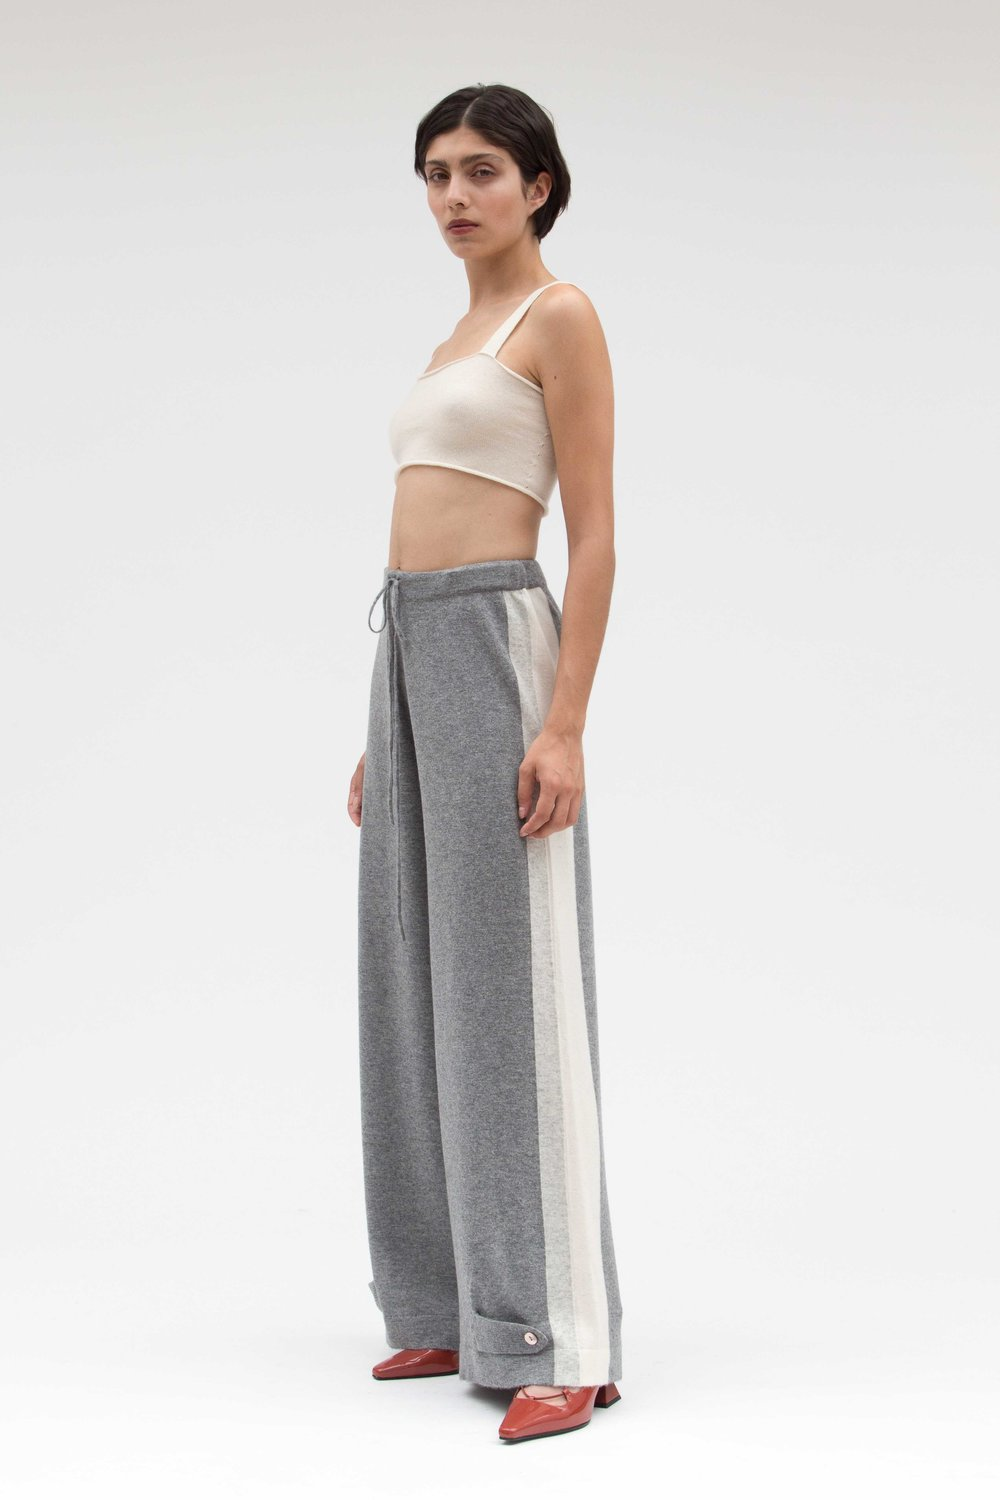 d5d957e1ac7 grey and white cashmere wide leg buckle trouser